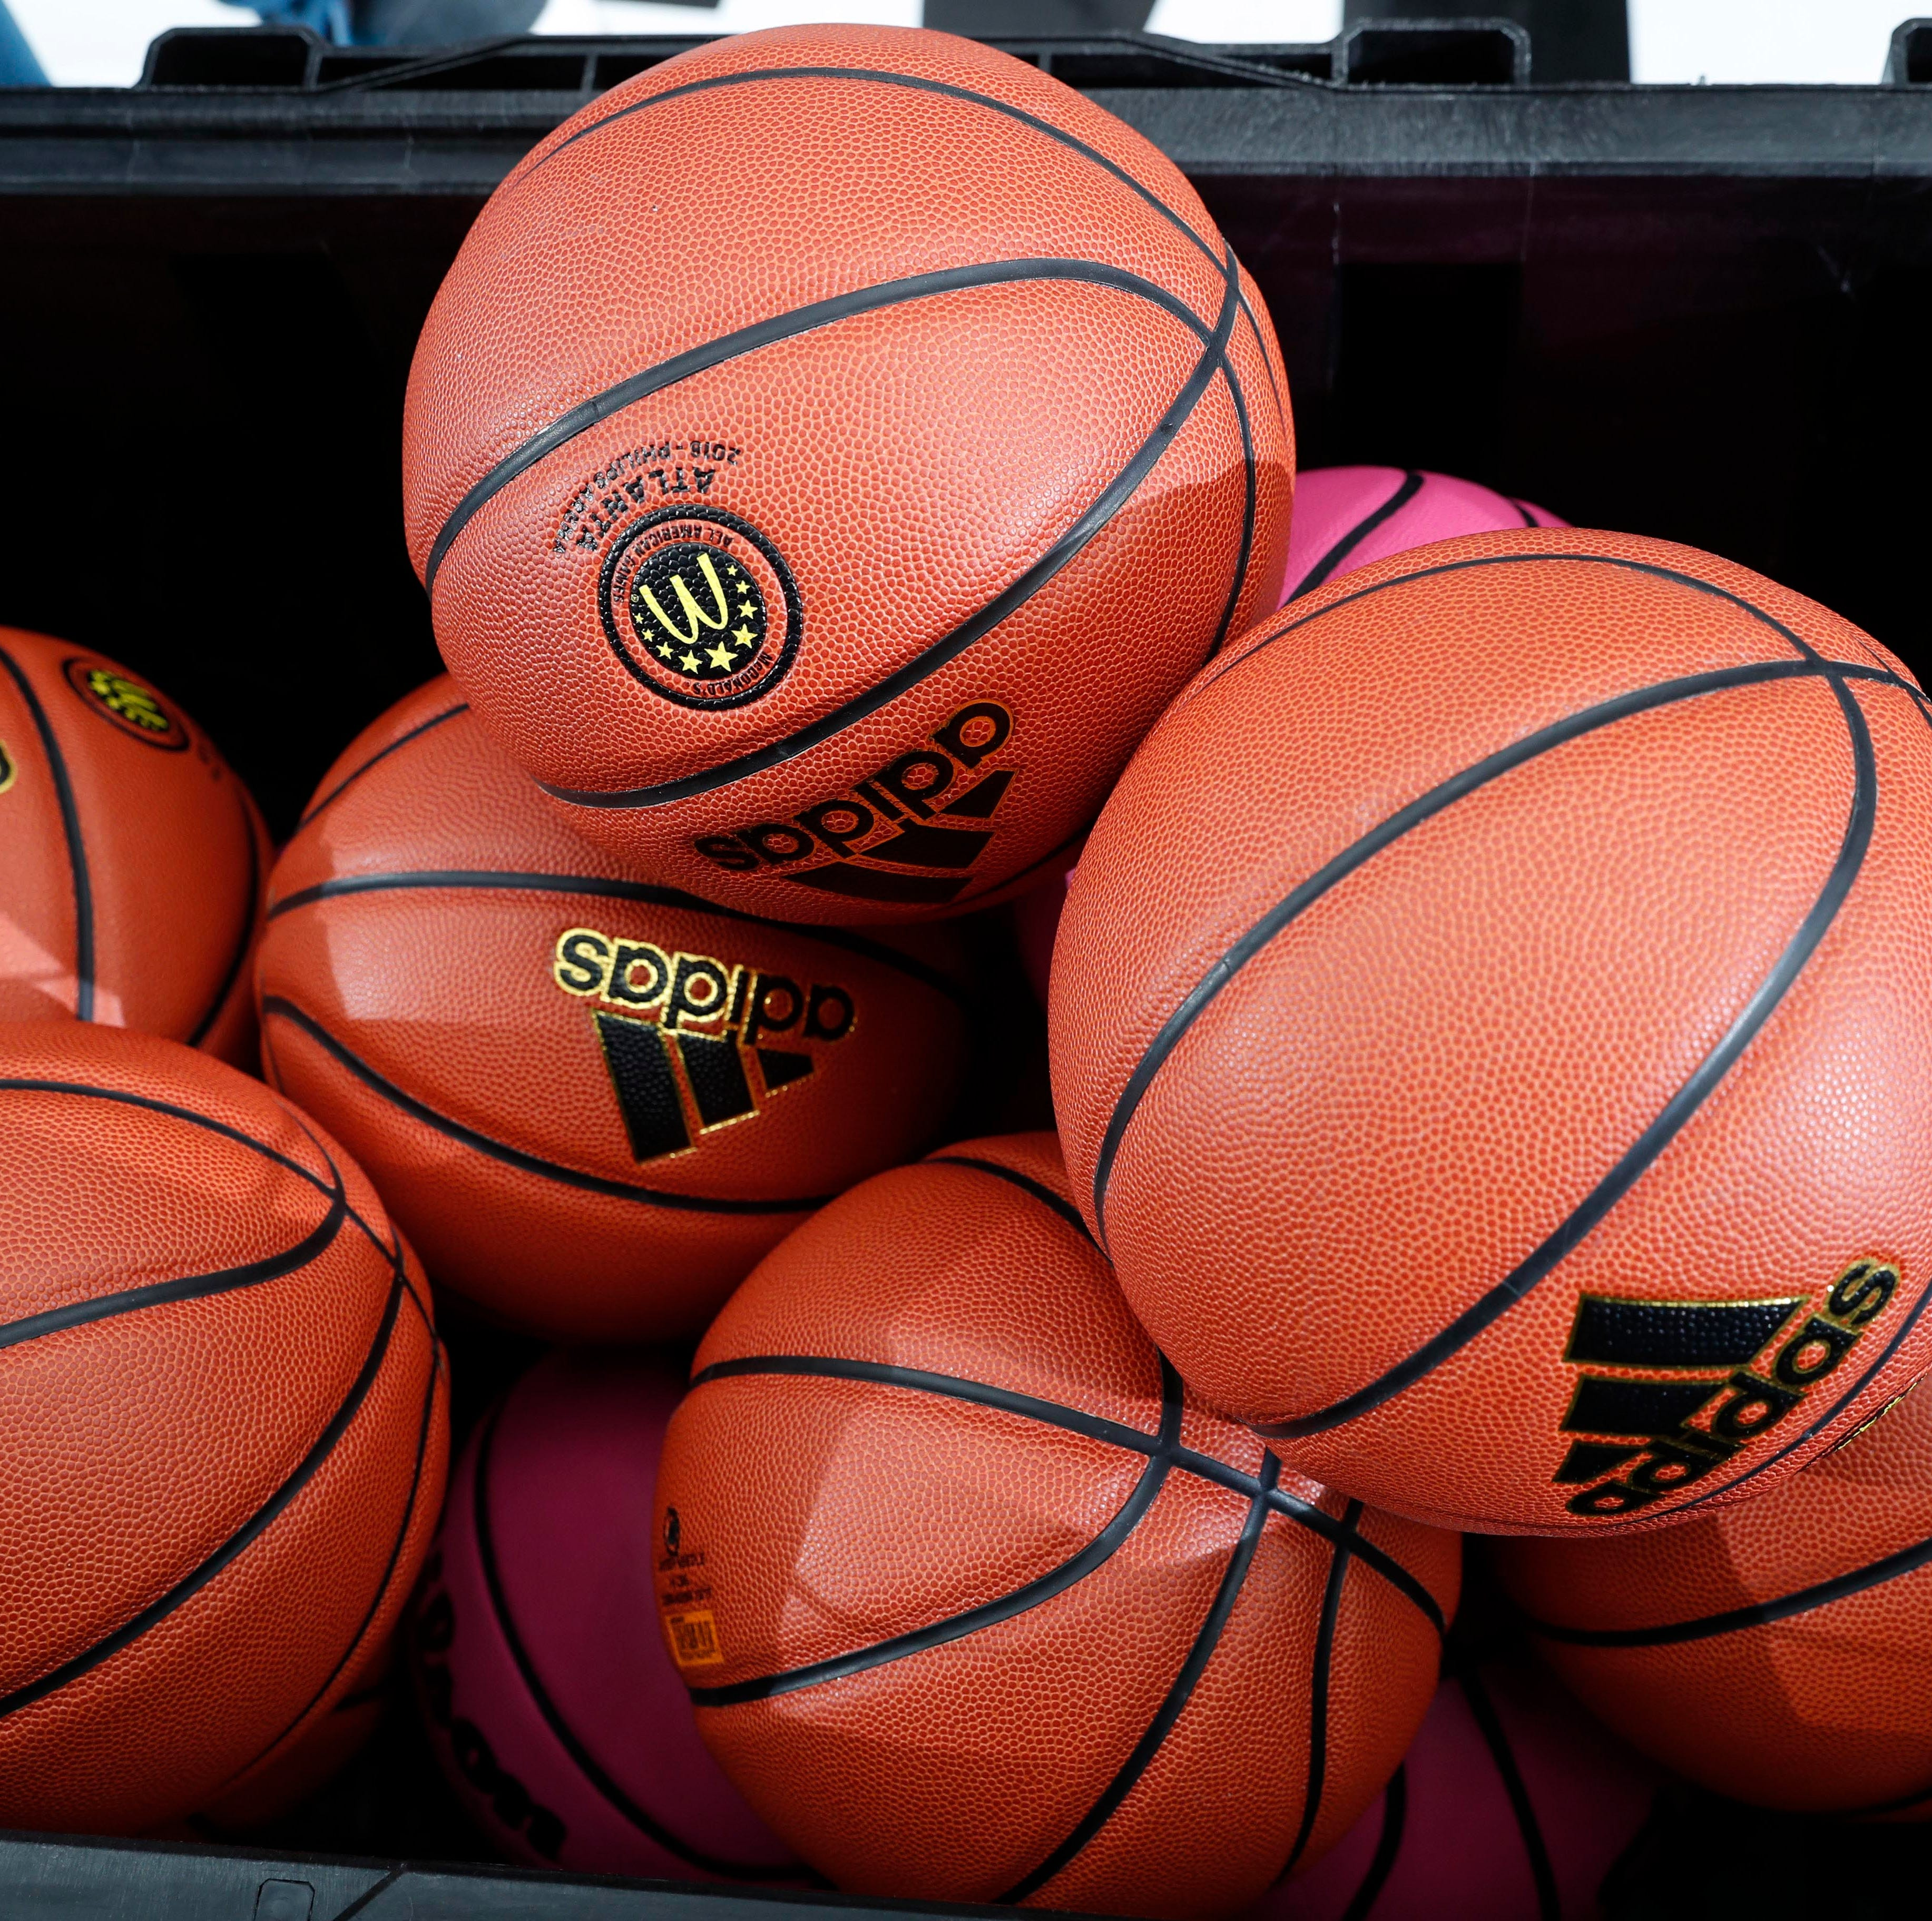 A general view of basketballs.